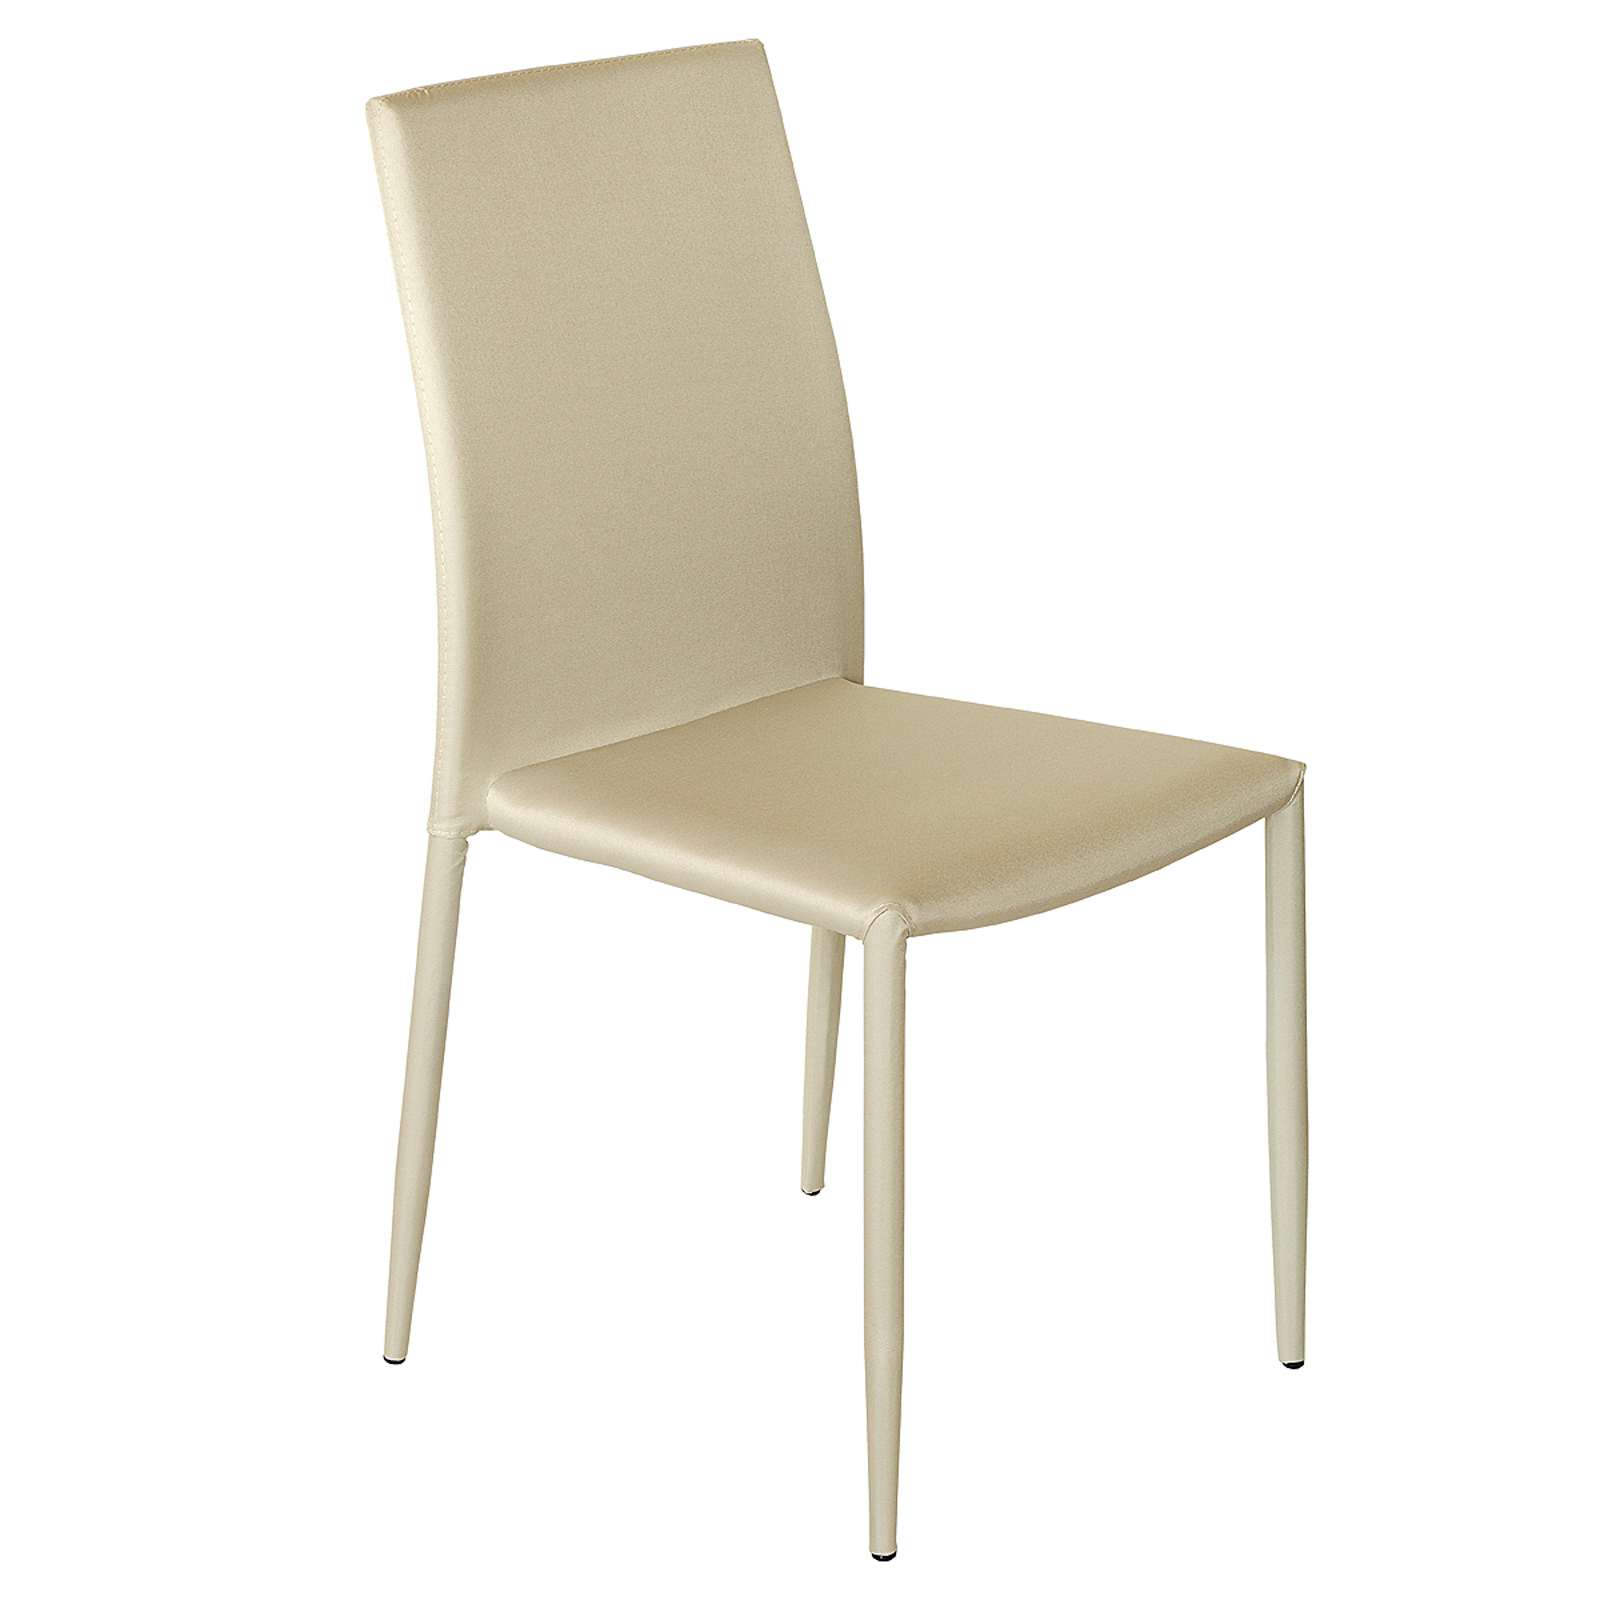 Stacking Dining Chairs Modern And Contemporary Stacking Dining Chair In Canvas